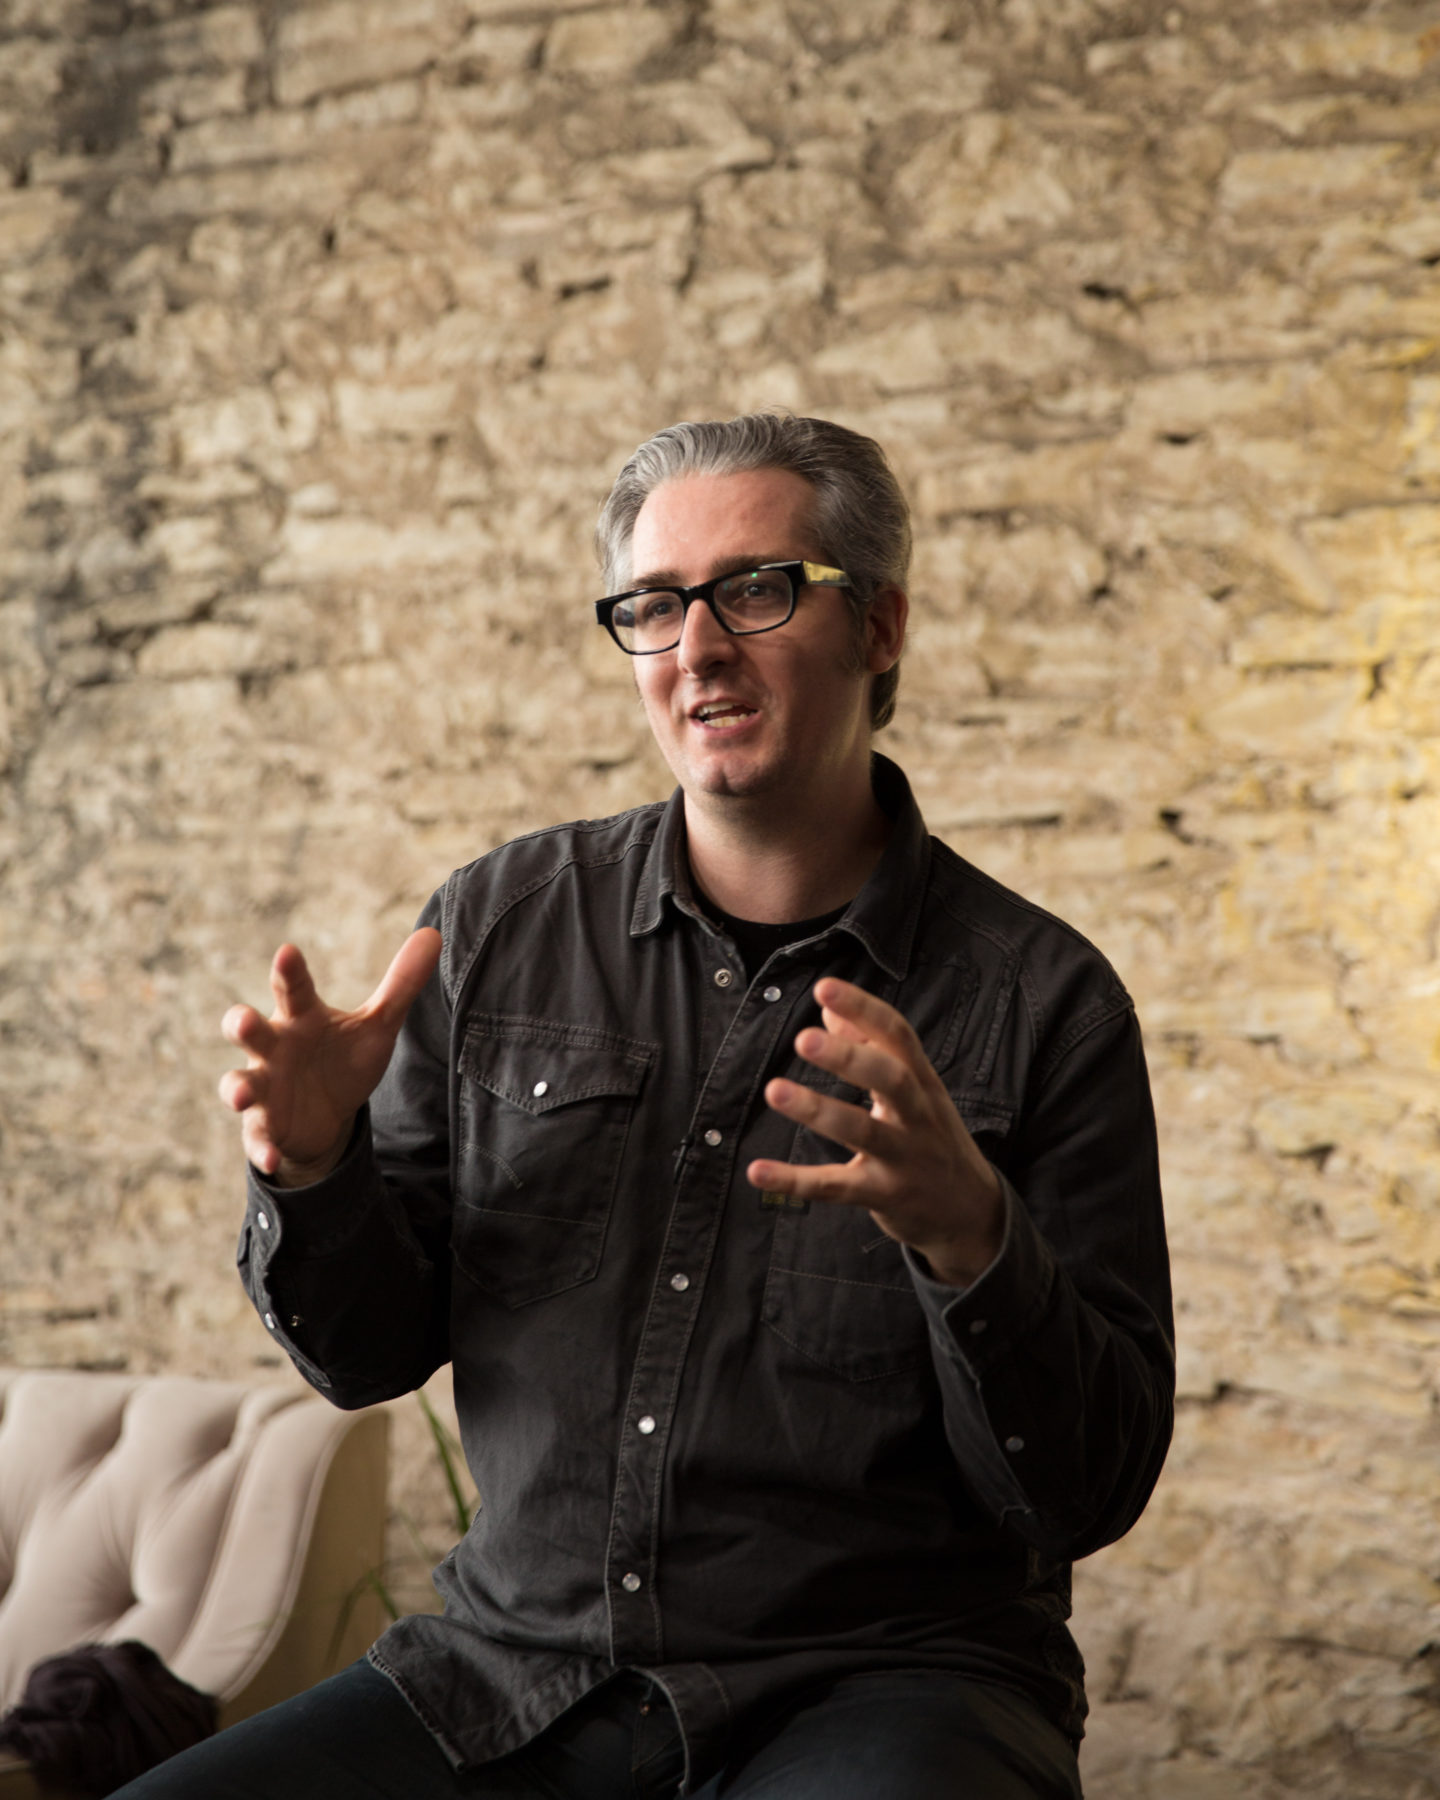 Bre Pettis CEO - MakerBot Industries at SXSW Interactive Activation for General Electric